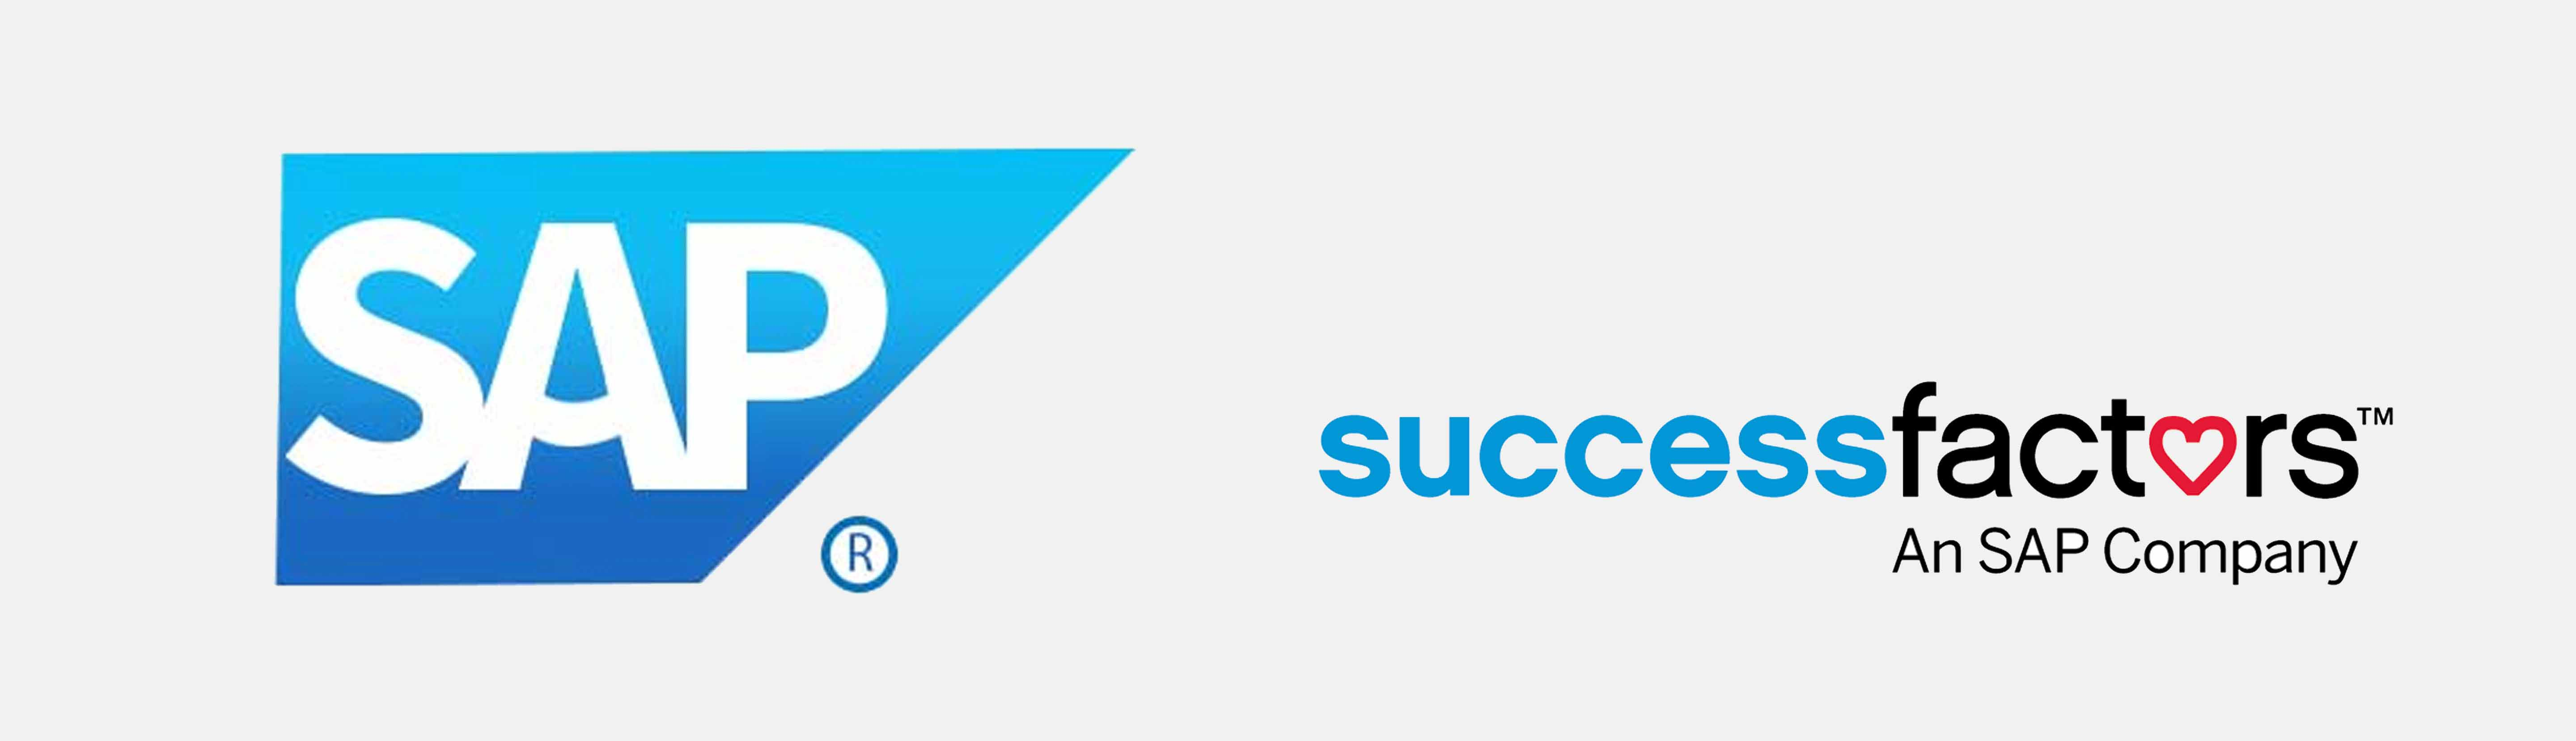 SAP-Successfactors